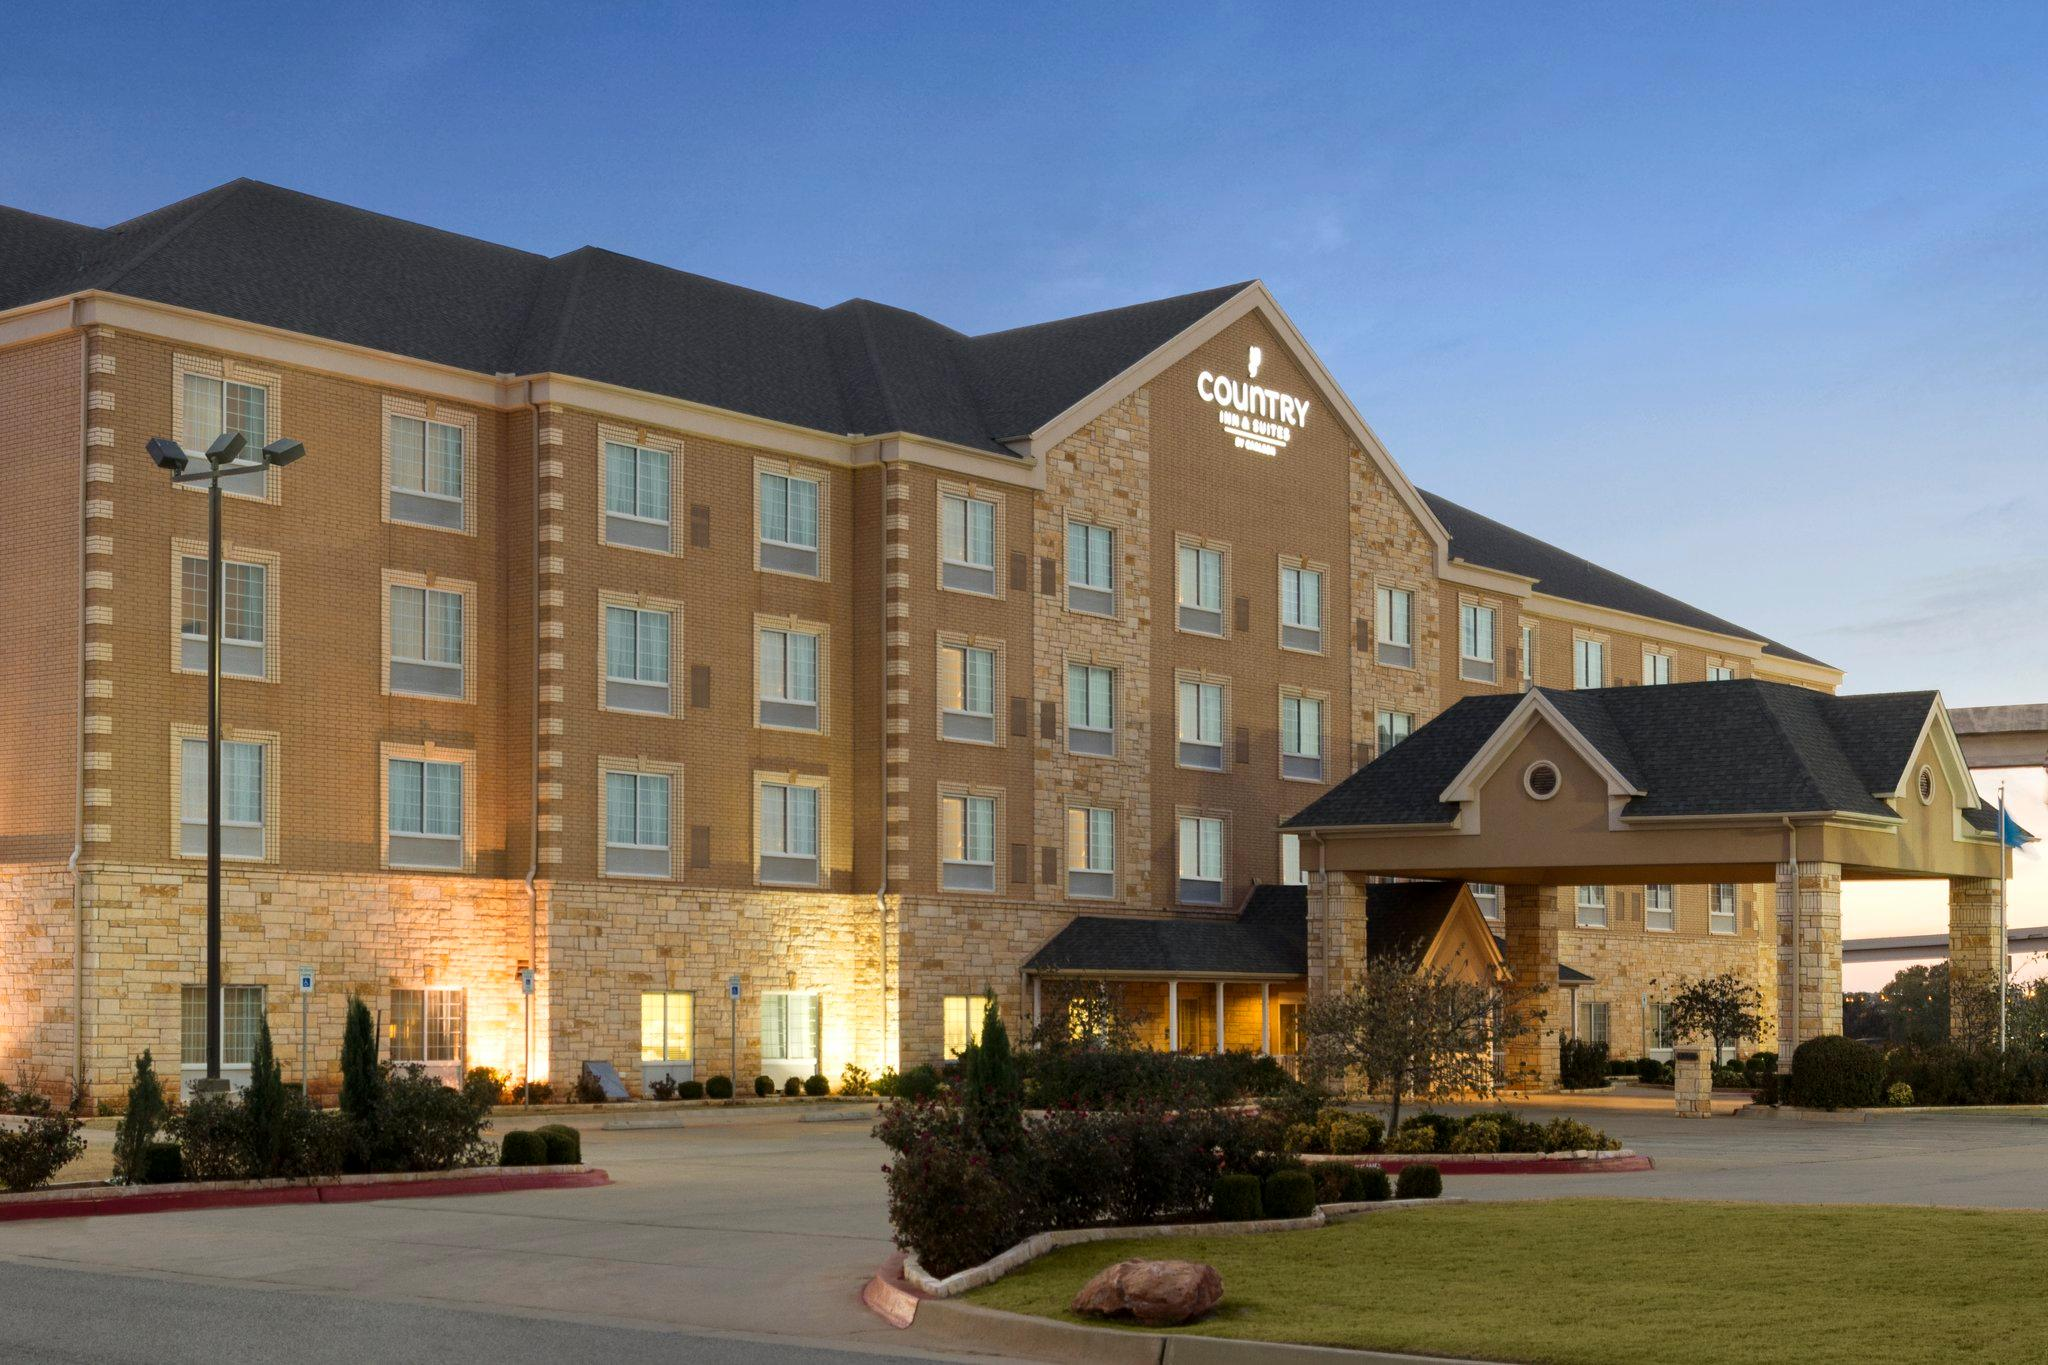 Country Inn & Suites By Carlson, Oklahoma City North (Quail Springs)